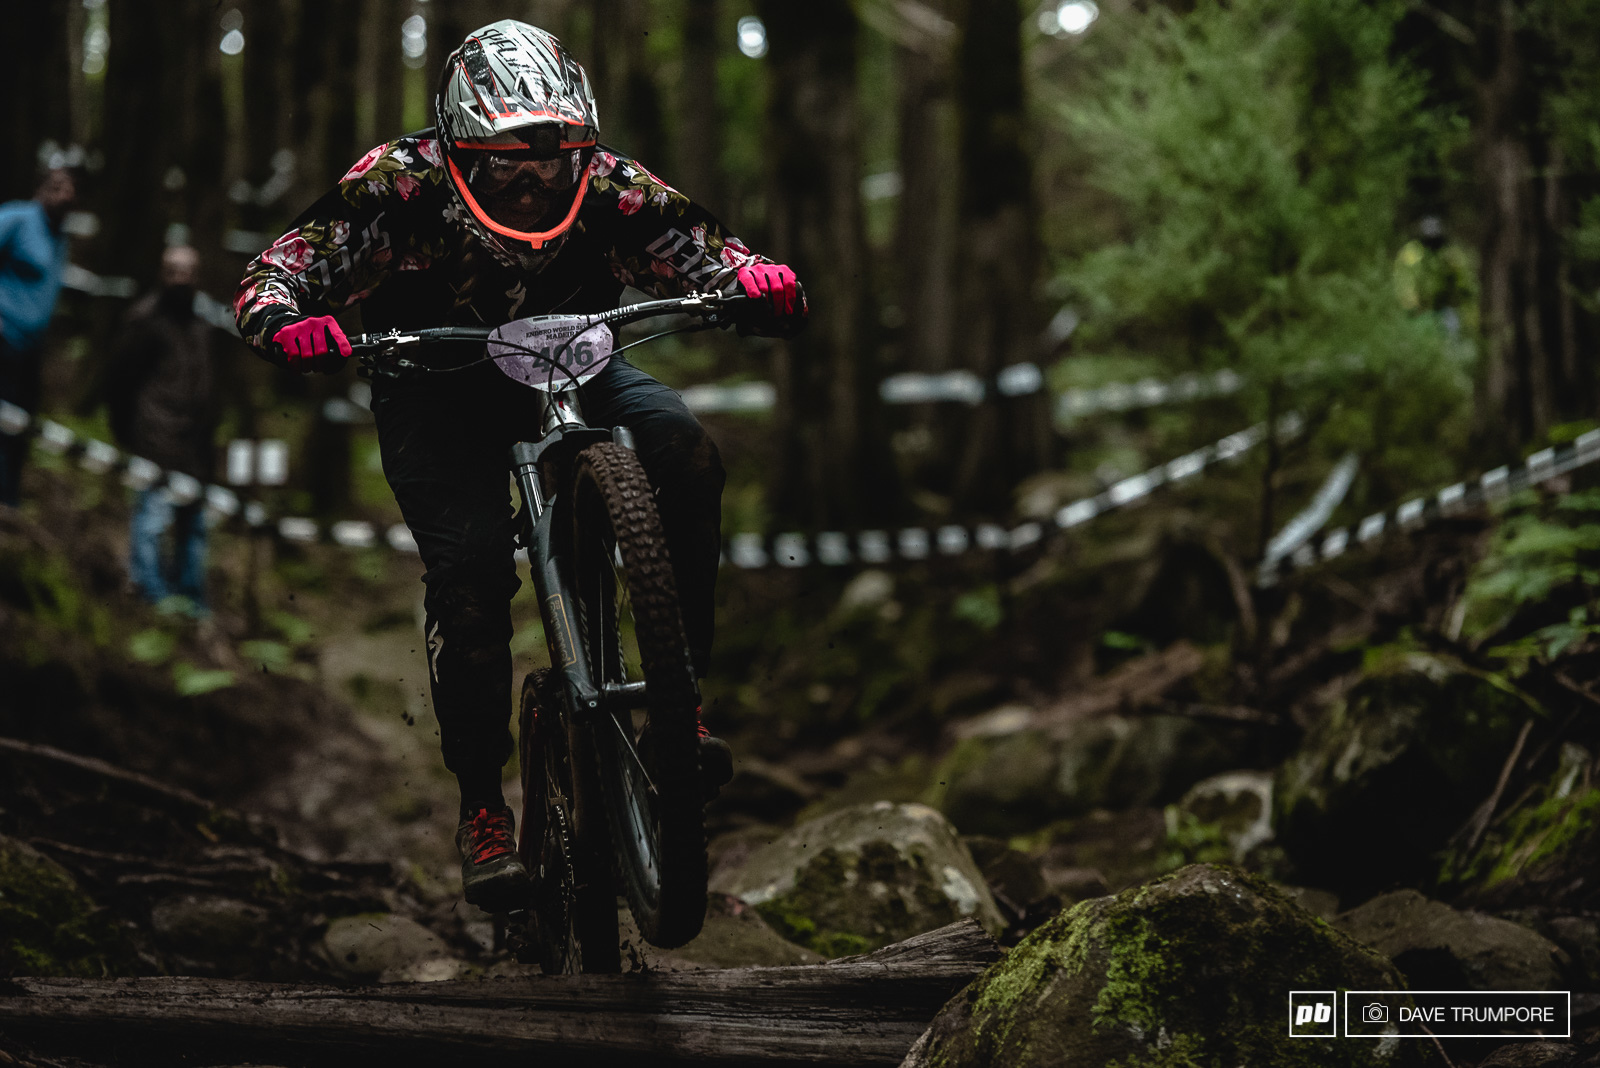 Miranda Miller is making her second EWS appearance of the season